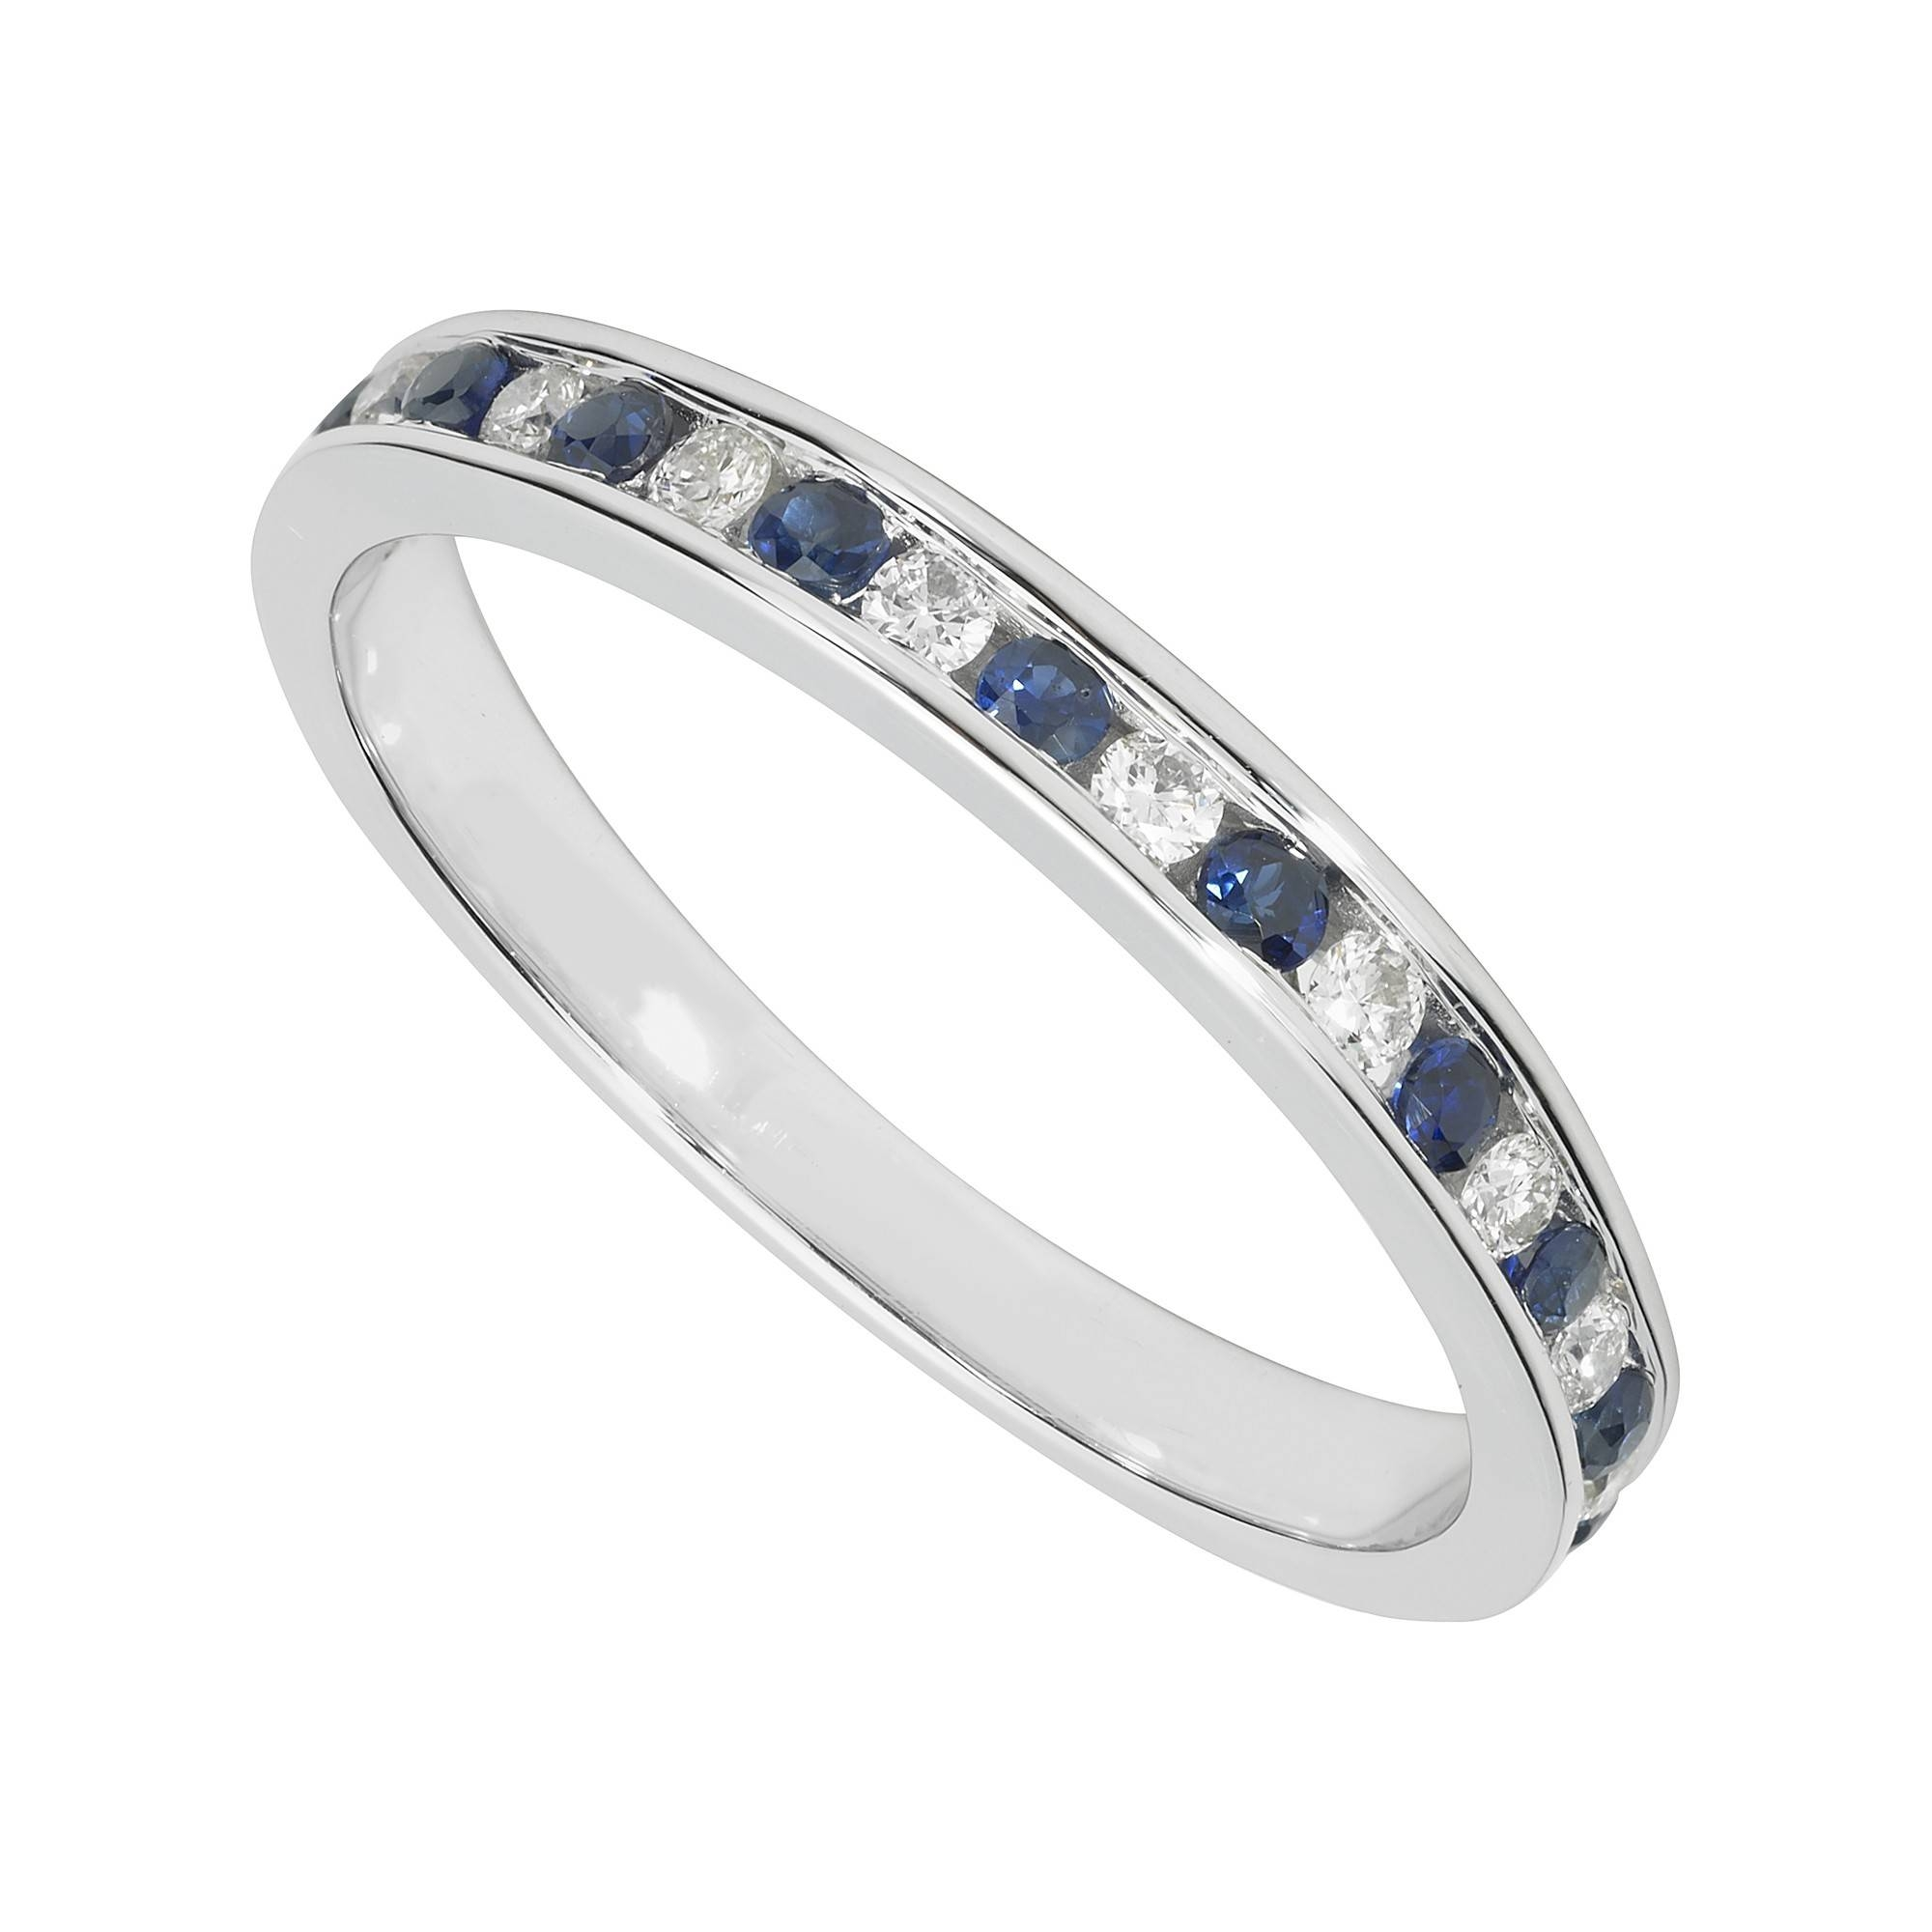 Ladies' 9ct White Gold Diamond And Sapphire Wedding Ring Pertaining To Sapphire And Diamond Wedding Rings (View 13 of 15)